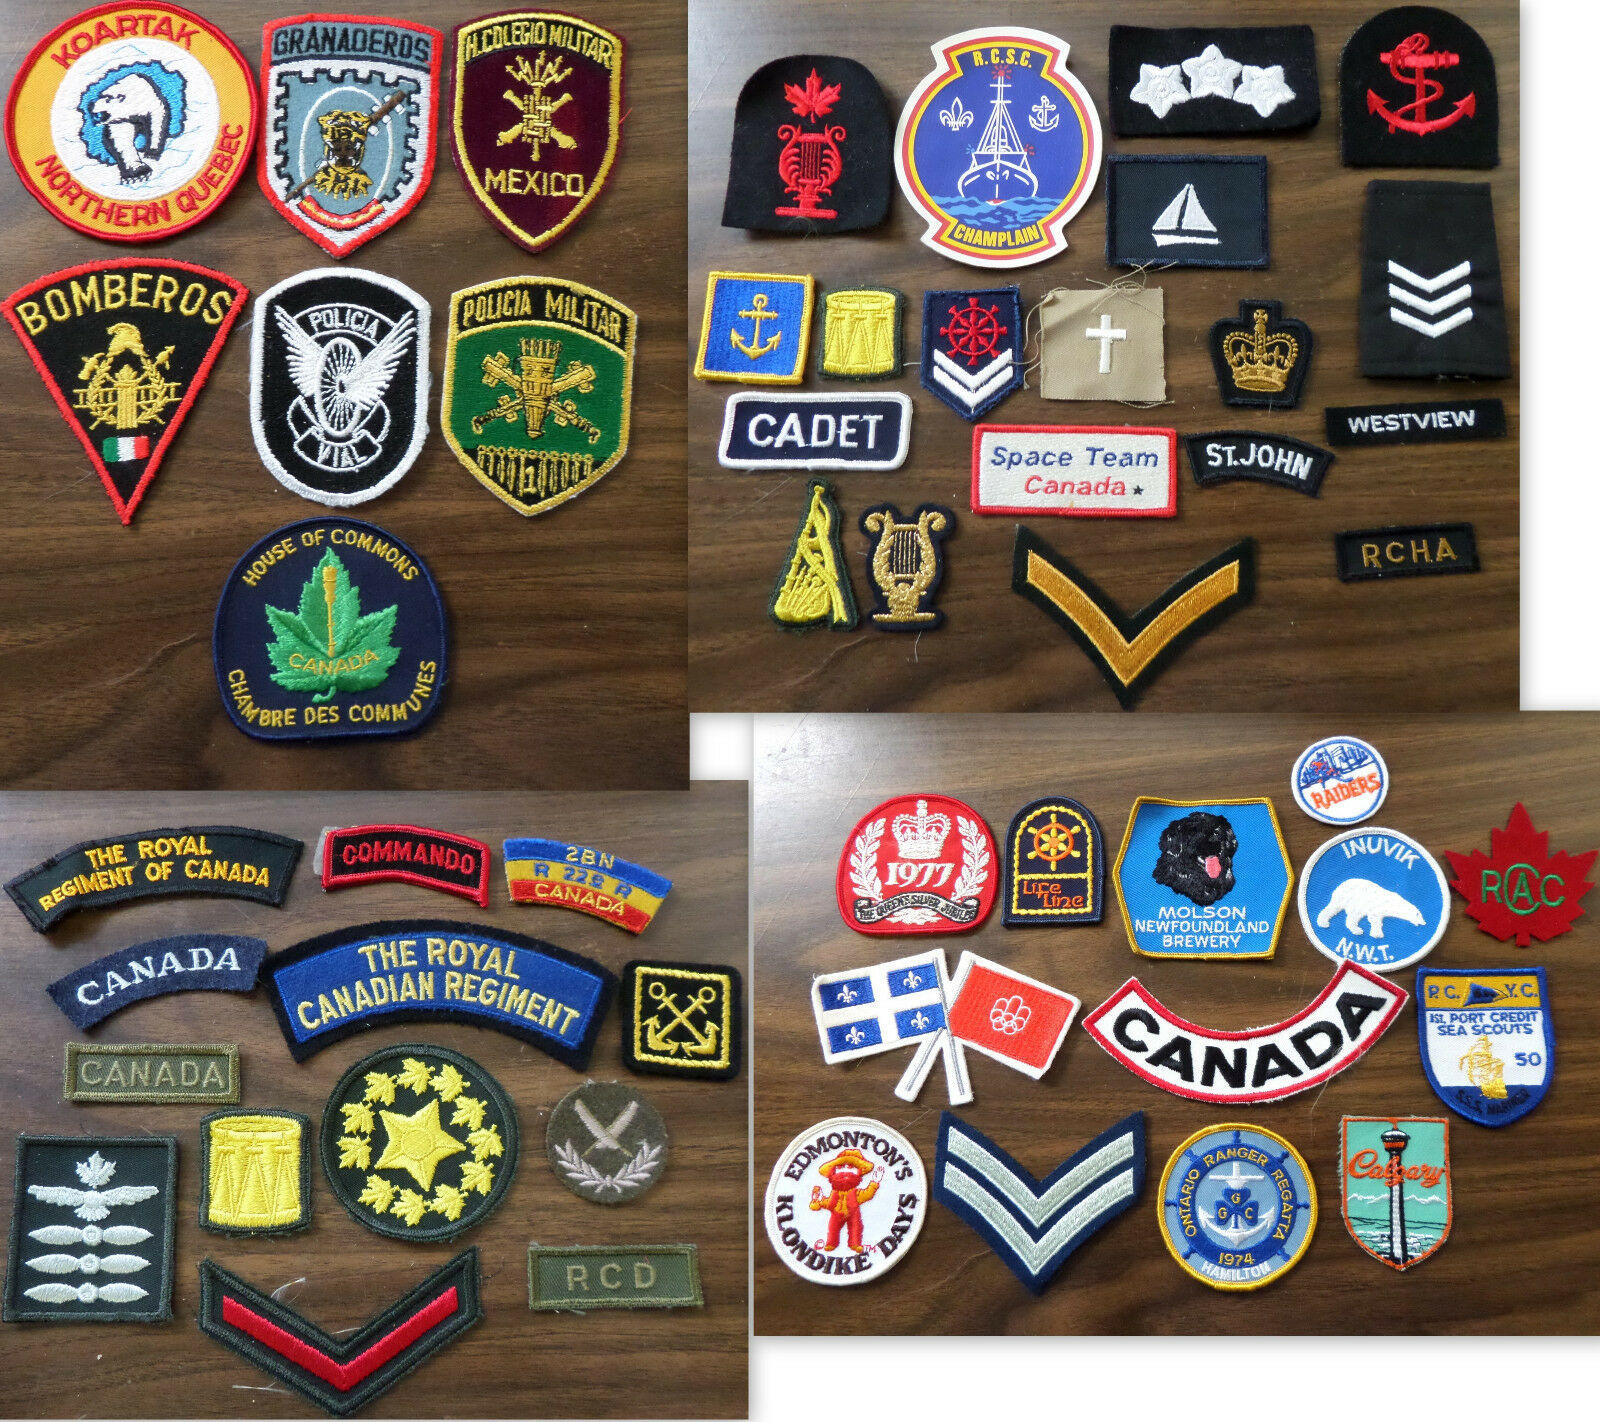 1945-74 Canadas Military Space Program Defence and Discovery